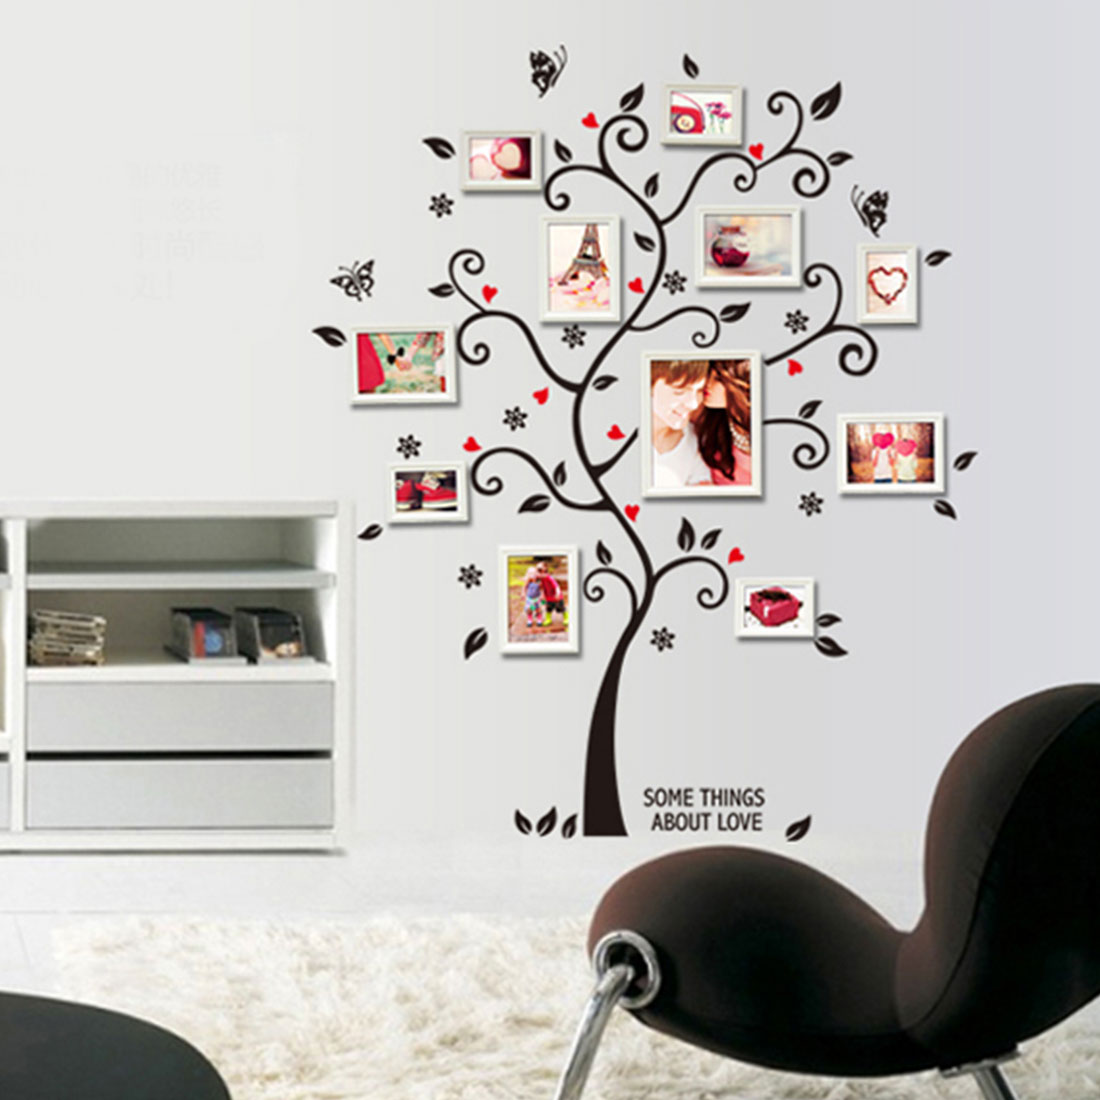 Vinyl Butterfly Family Tree Decor Removable Diy Photo Frames Home